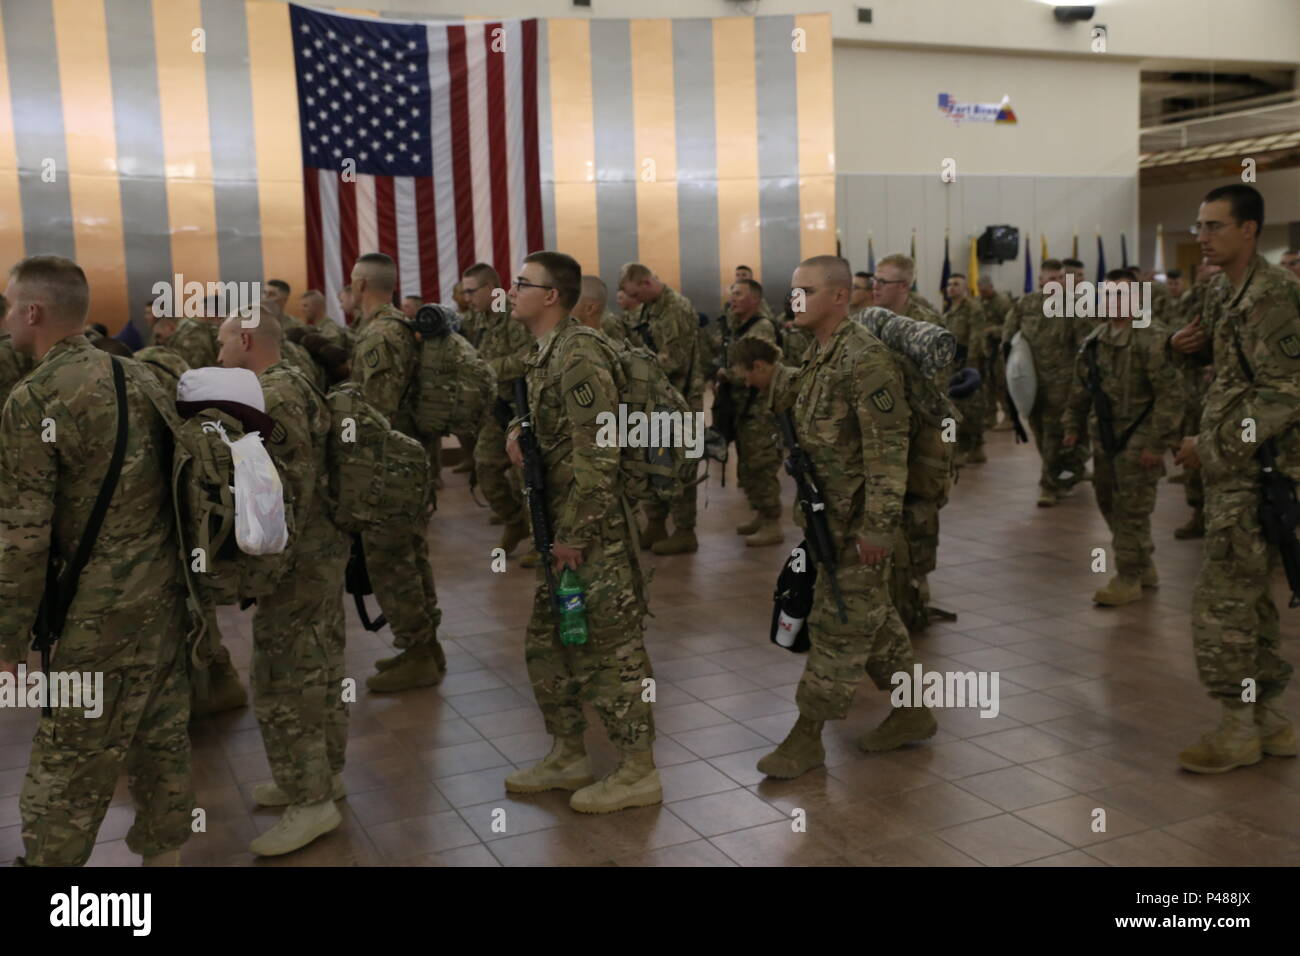 Soldiers Assigned To The 312th And The 461st Engineer Companies Both Army Reserve Units Are Processed Weighed And Manifested Prior To Boarding A Flight To U S Central Command For A Deployment In